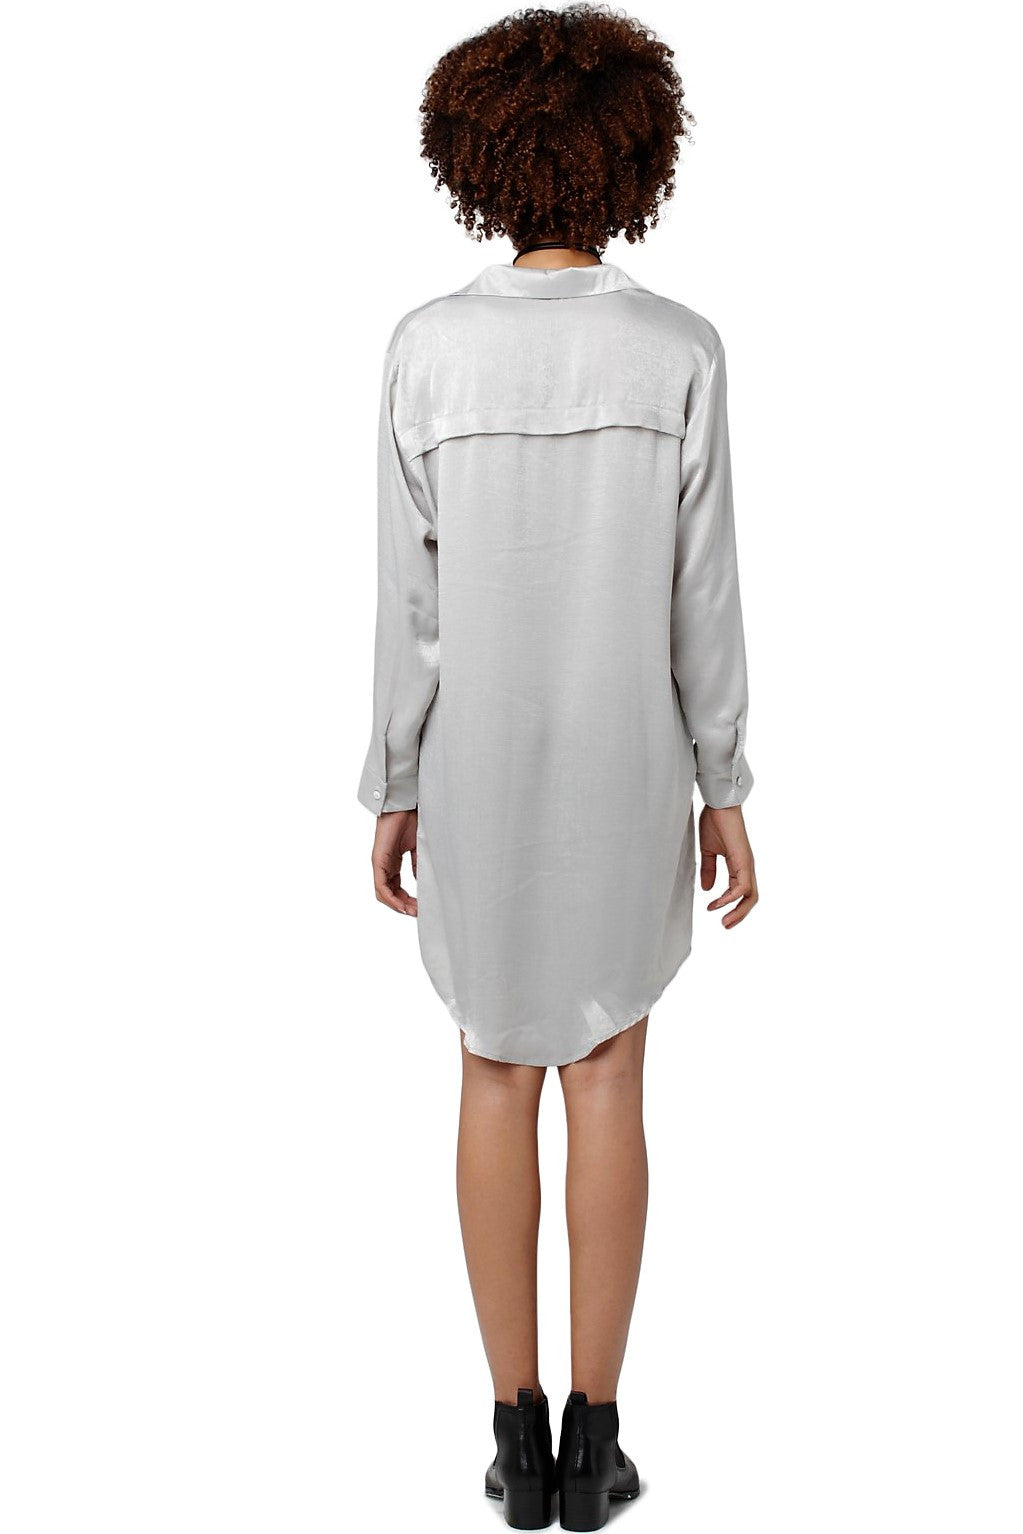 Super Soft Long-Sleeve Dress